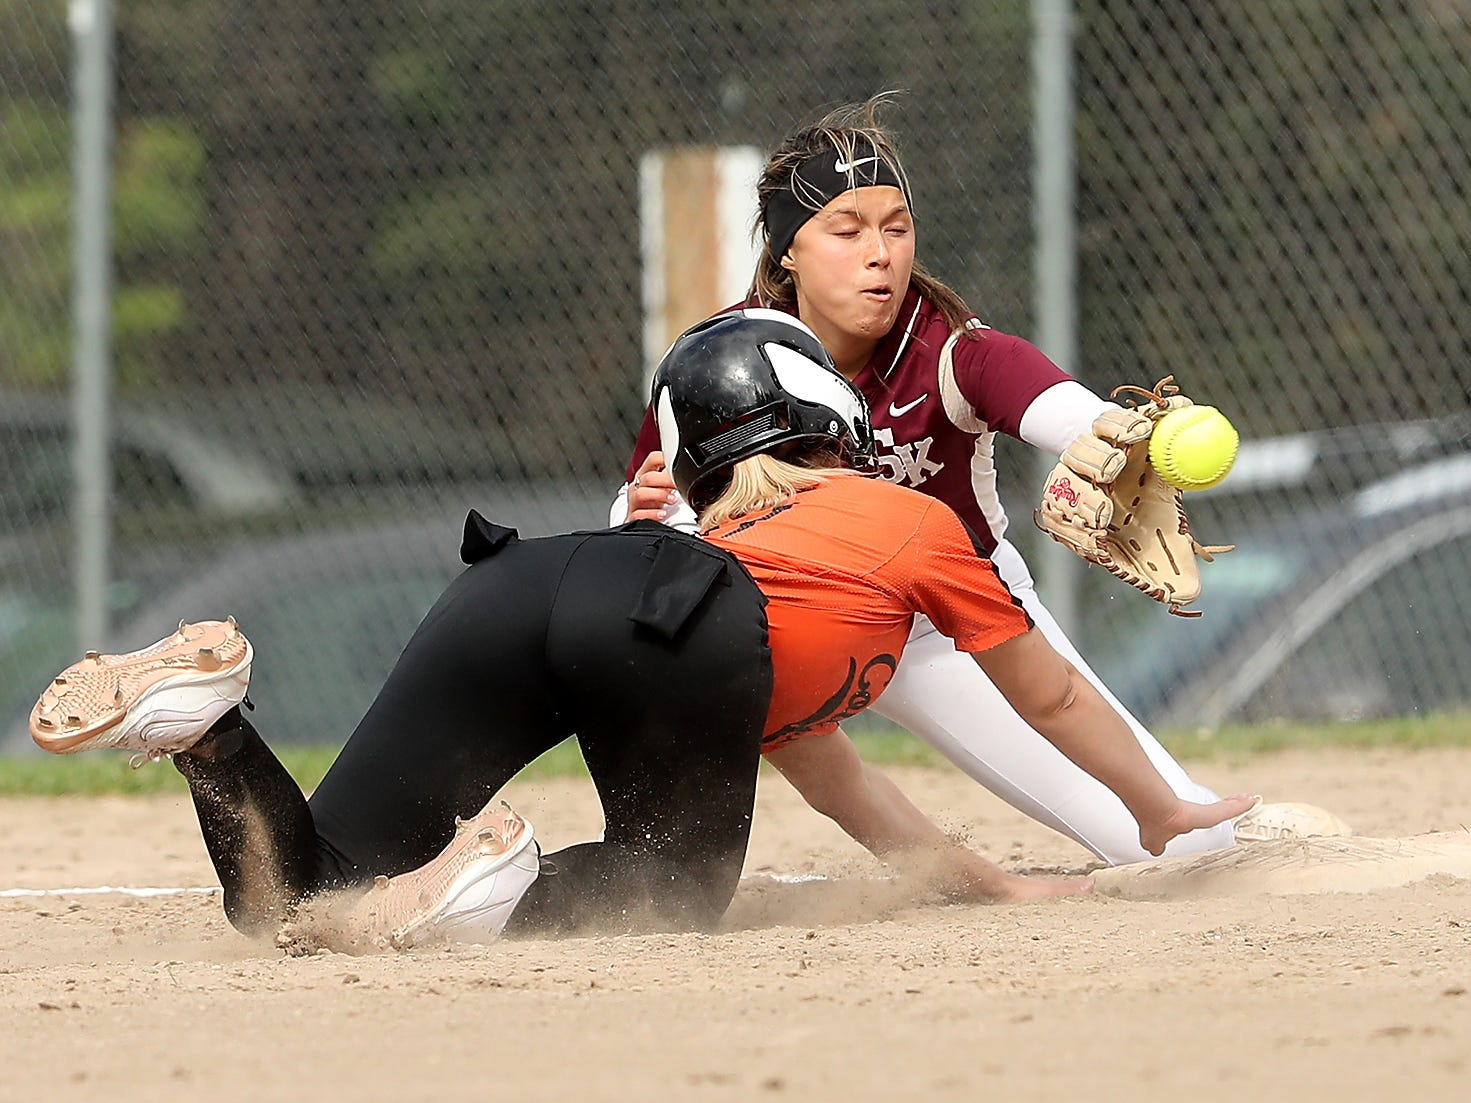 Central Kitsap's Gabby Story collides with South Kitsap's Jordynn Lawrence as she dives back to first at Linder Field in Silverdale on Tuesday, April 23, 2019. Story was safe on the play.